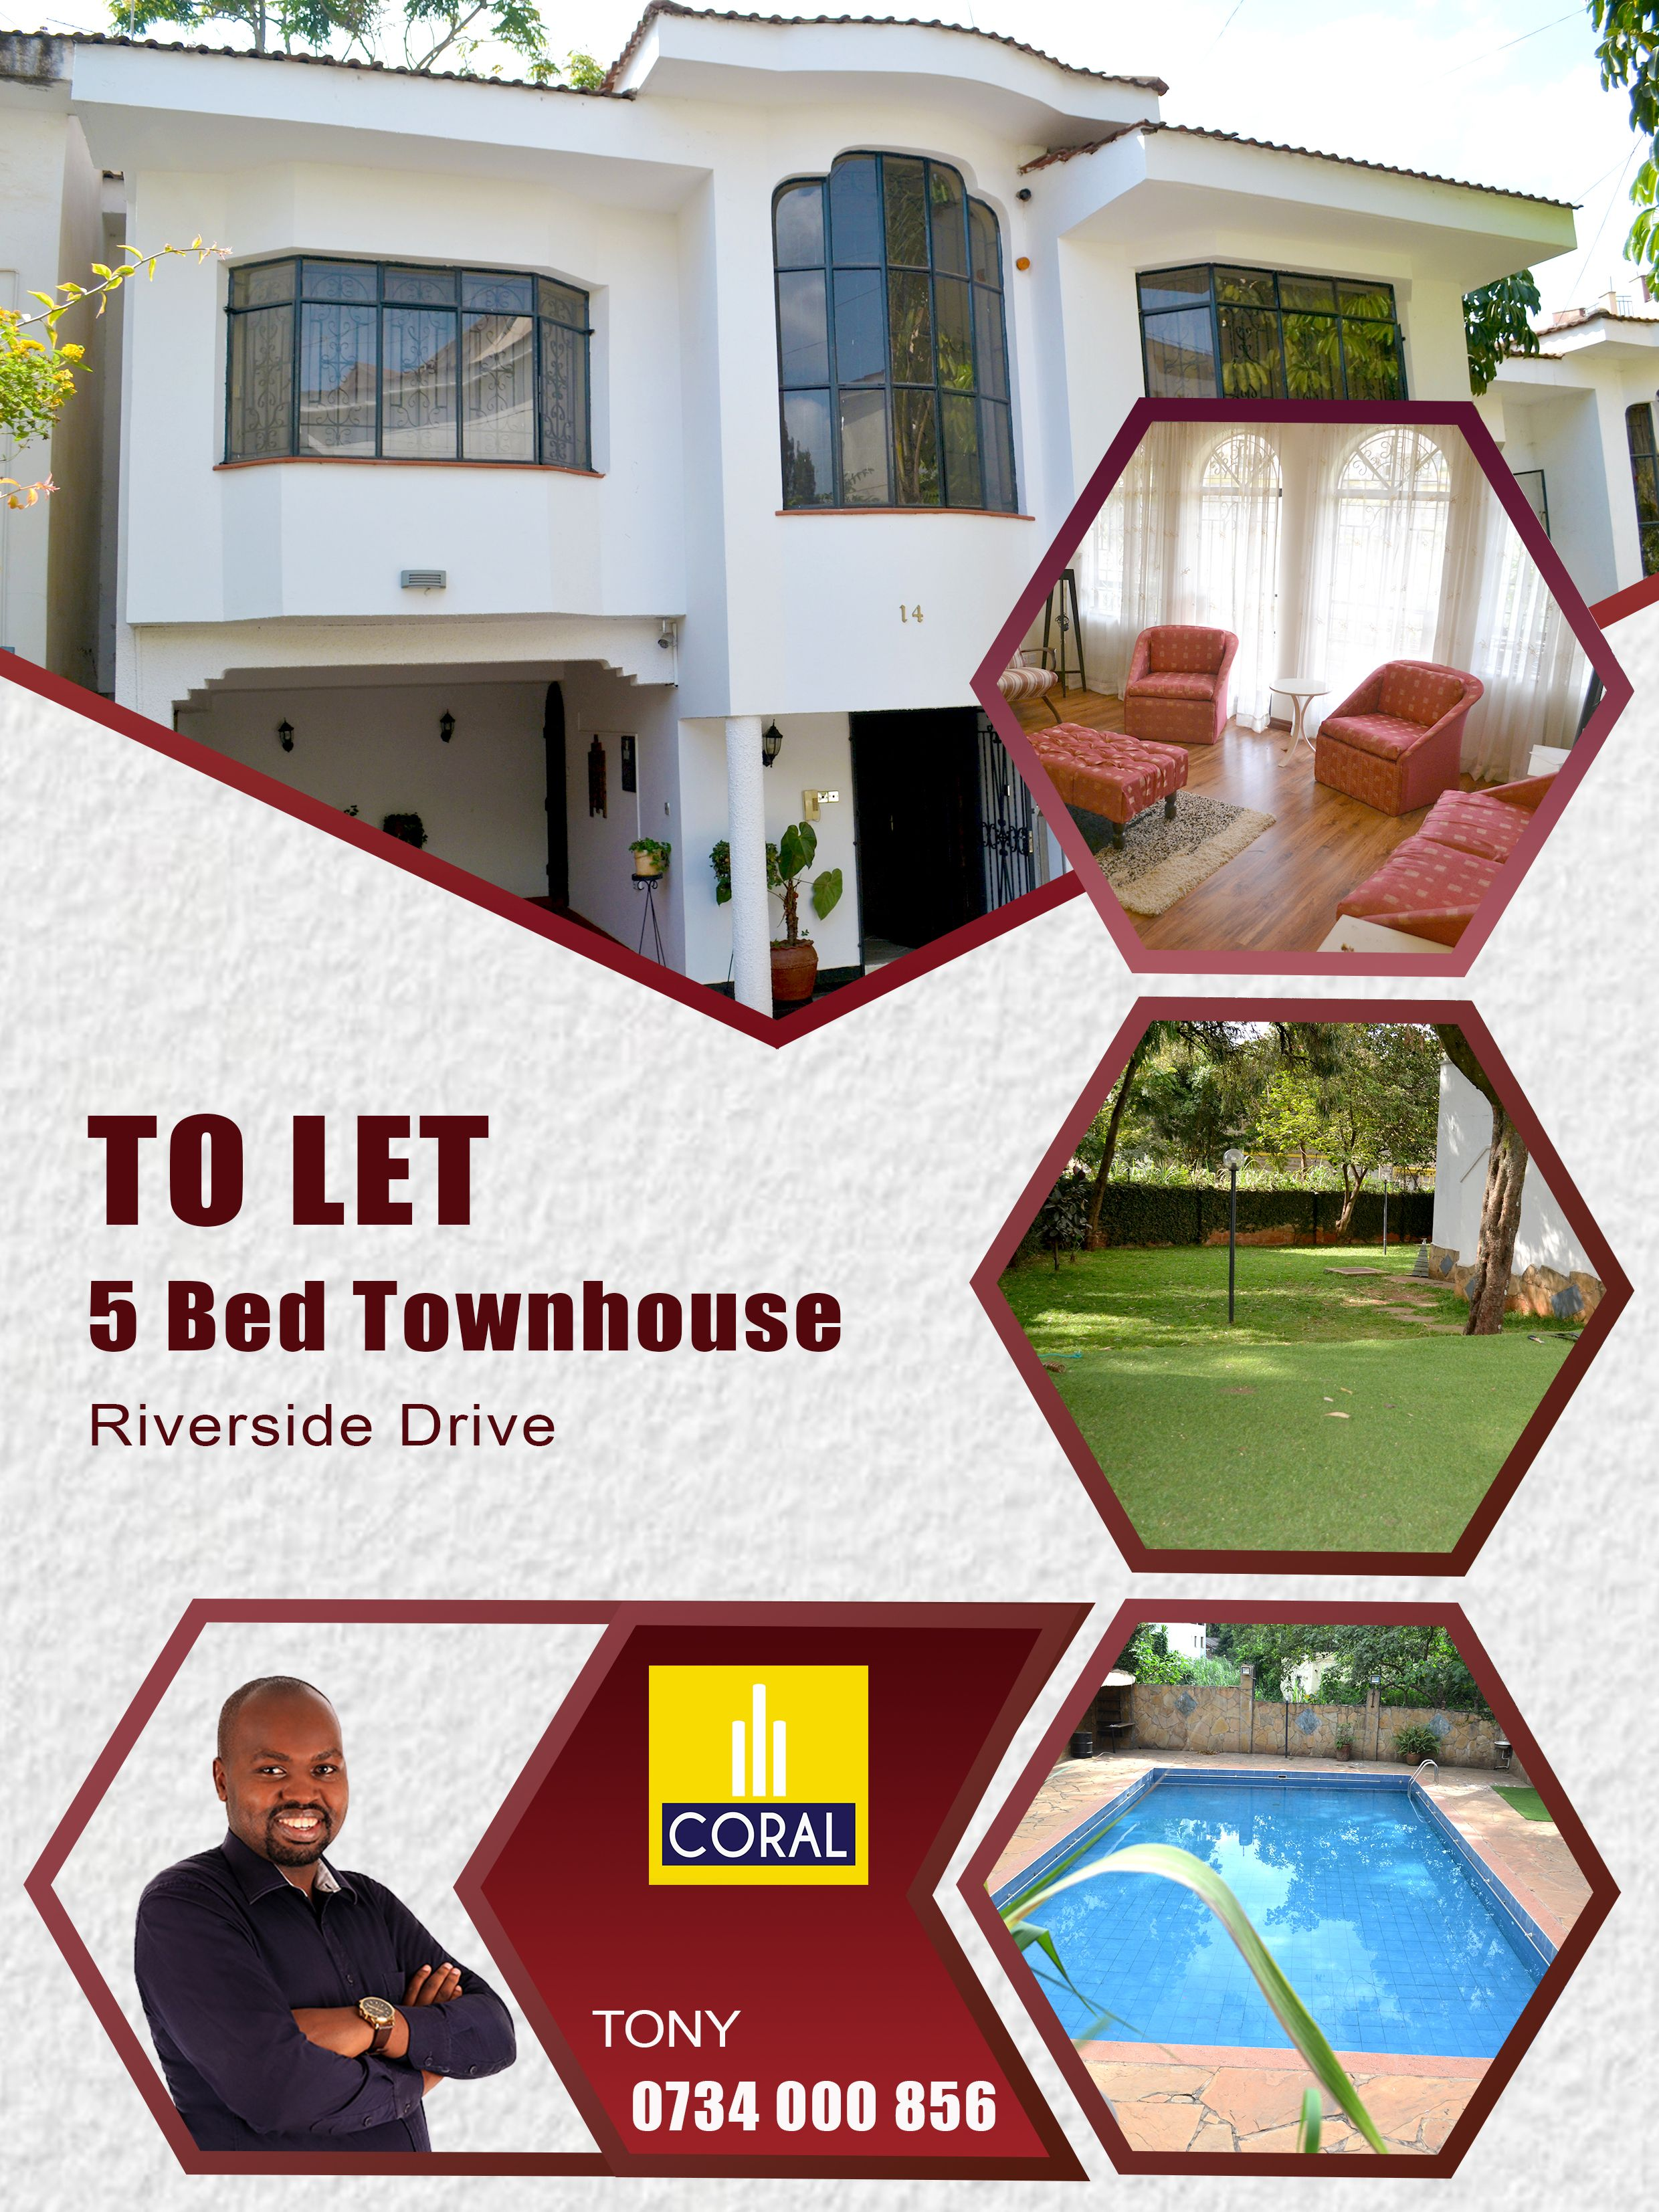 5 Bedroom Townhouse For Rent Off Riverside Drive Townhouse For Rent Townhouse Riverside Drive